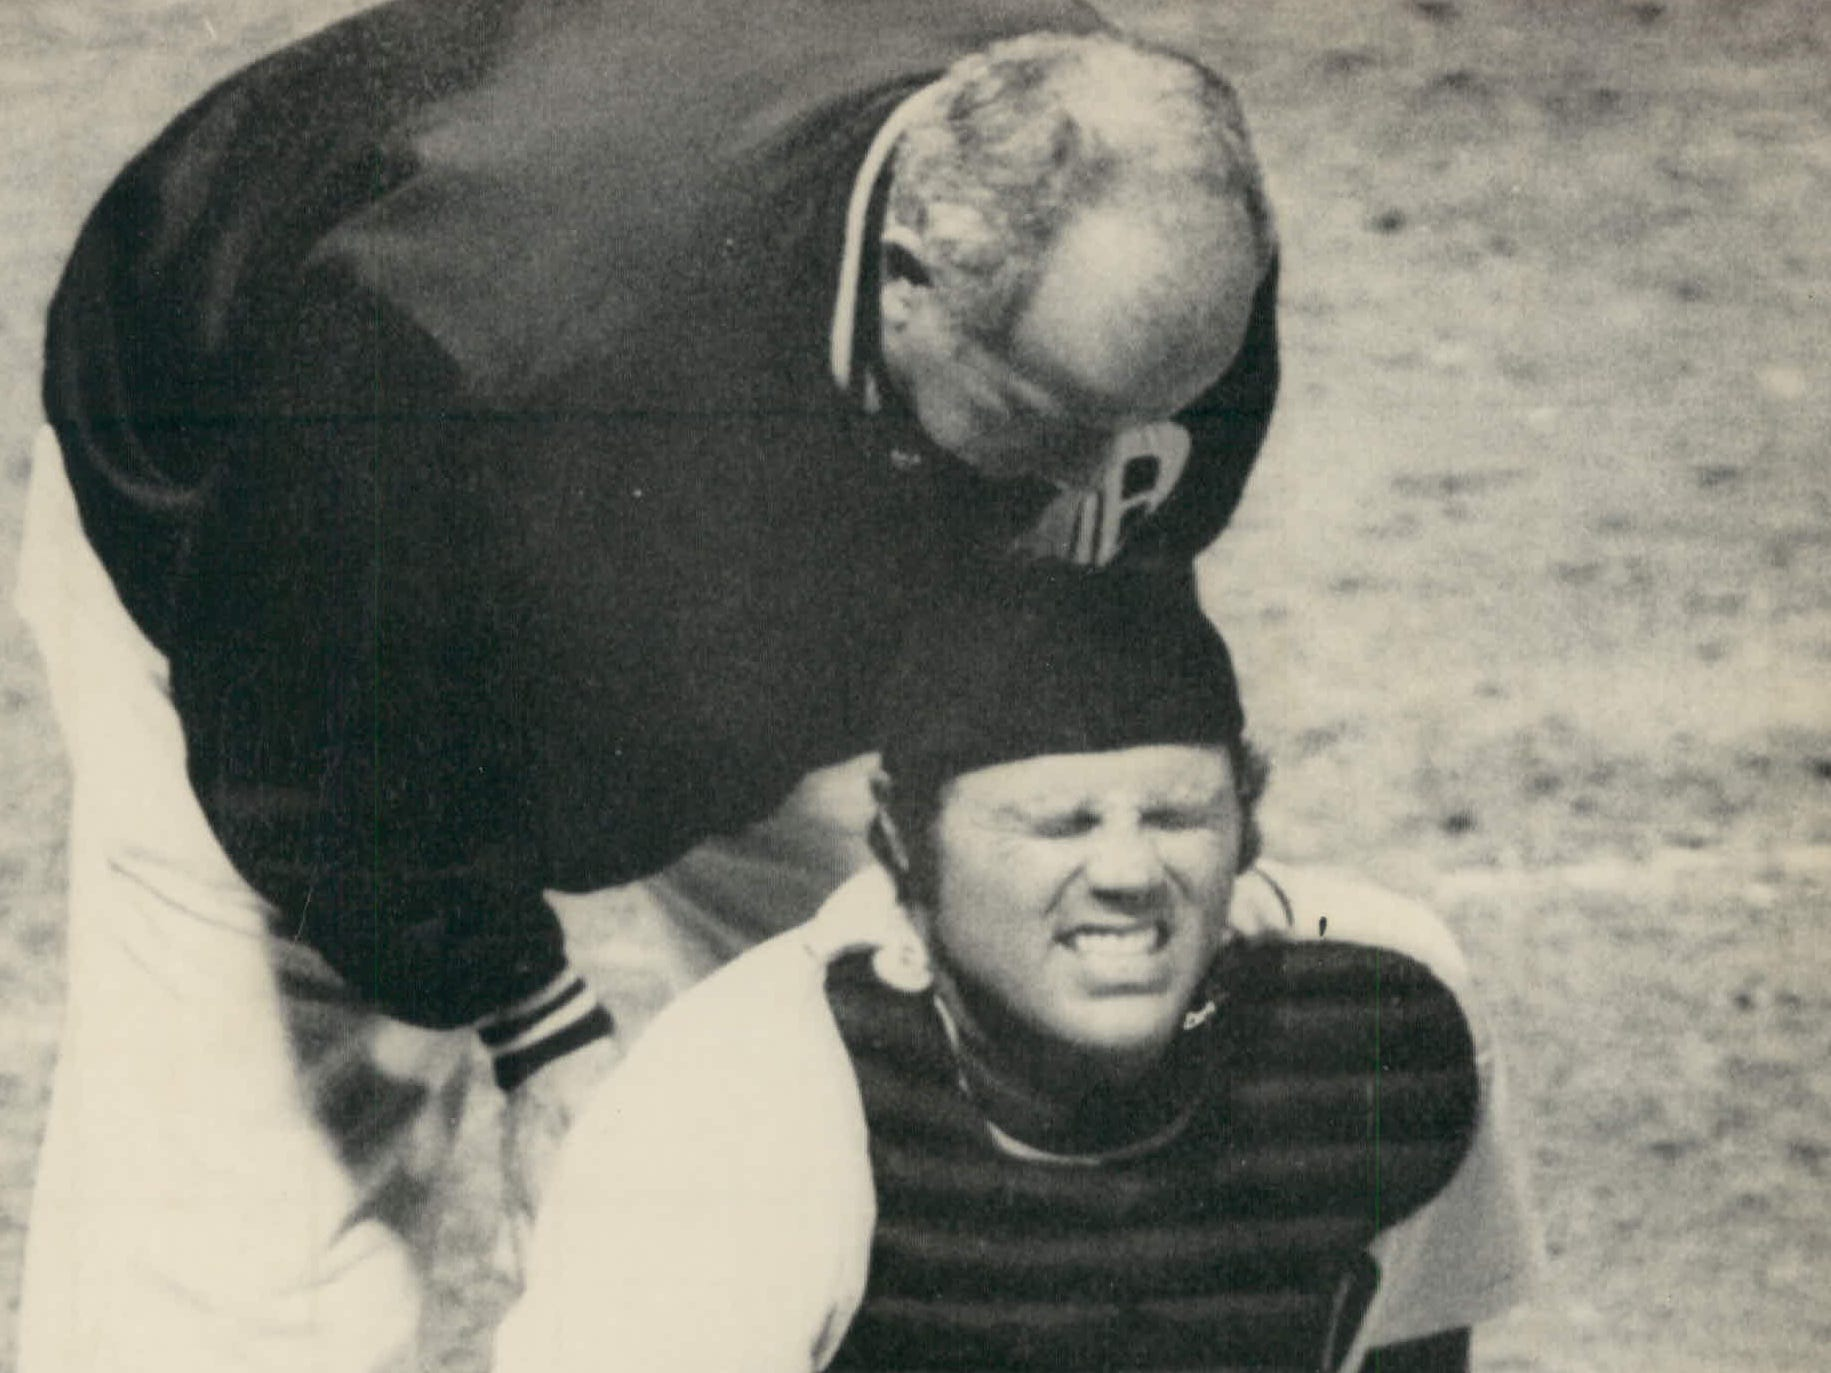 Tigers catcher Bill Freehan grimaces in pain while trainer Bill Behm attempts to help after Freehan was struck in the groin by a ball pitched by Vern Ruhle in the fifth inning of Milwaukee Brewers game at Tiger Stadium on May 8, 1975.